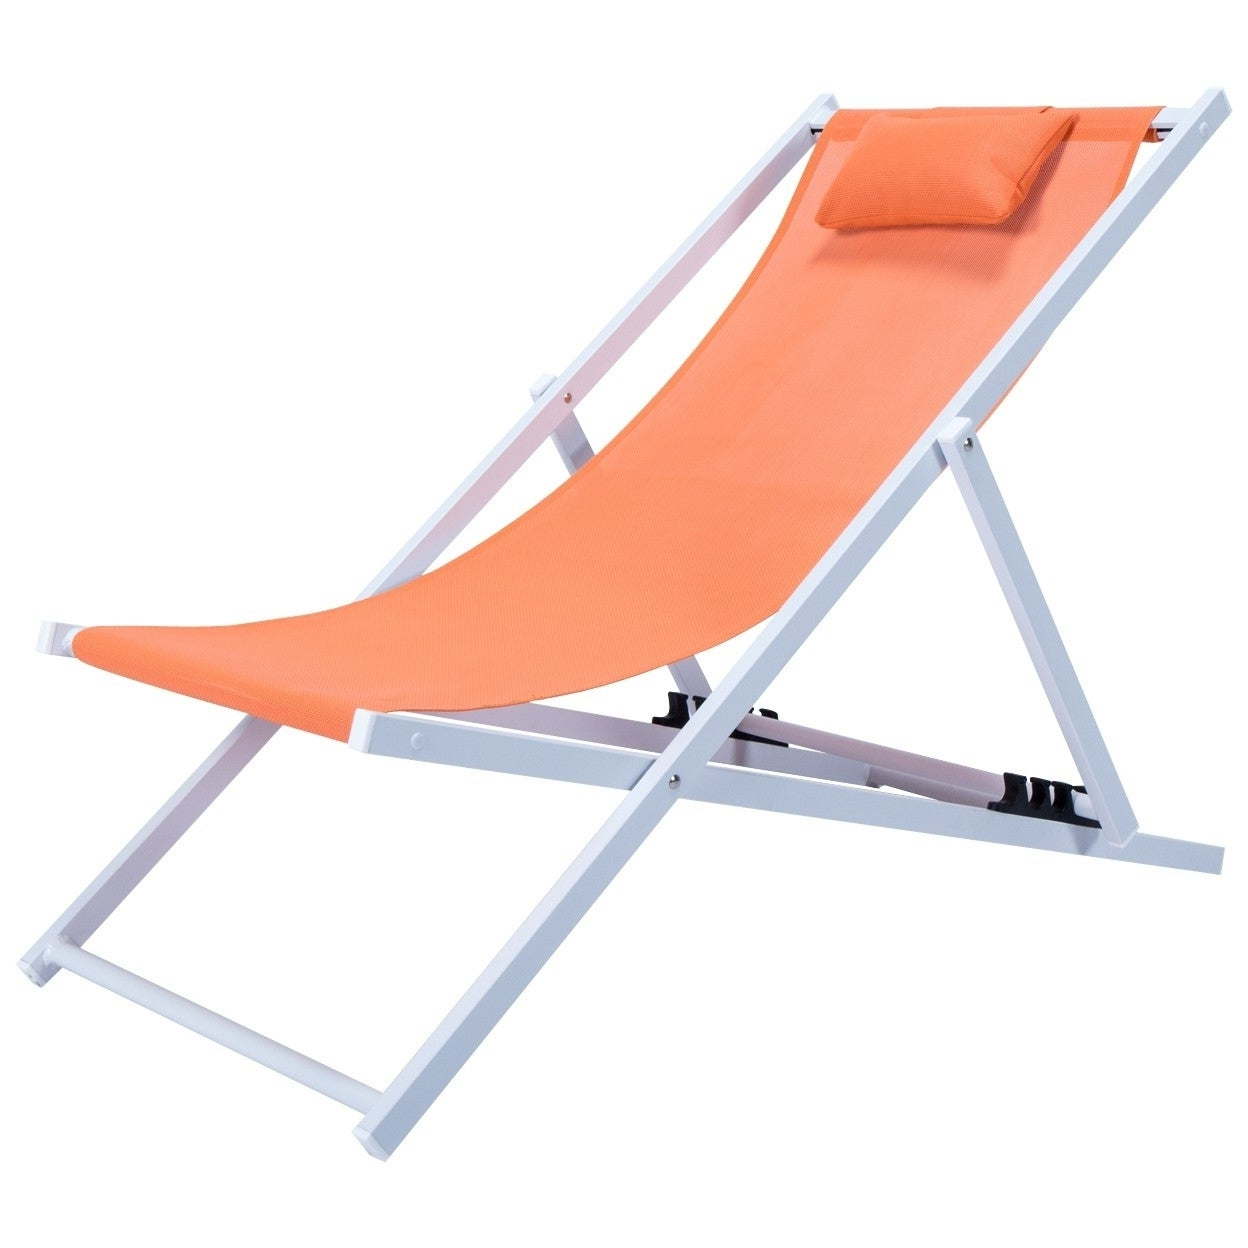 Well Liked Leisuremod Sunset Patio Sling Folding Chair Adjustable With Headrest Regarding Sunset Patio Sling Folding Chairs With Headrest (Gallery 2 of 25)